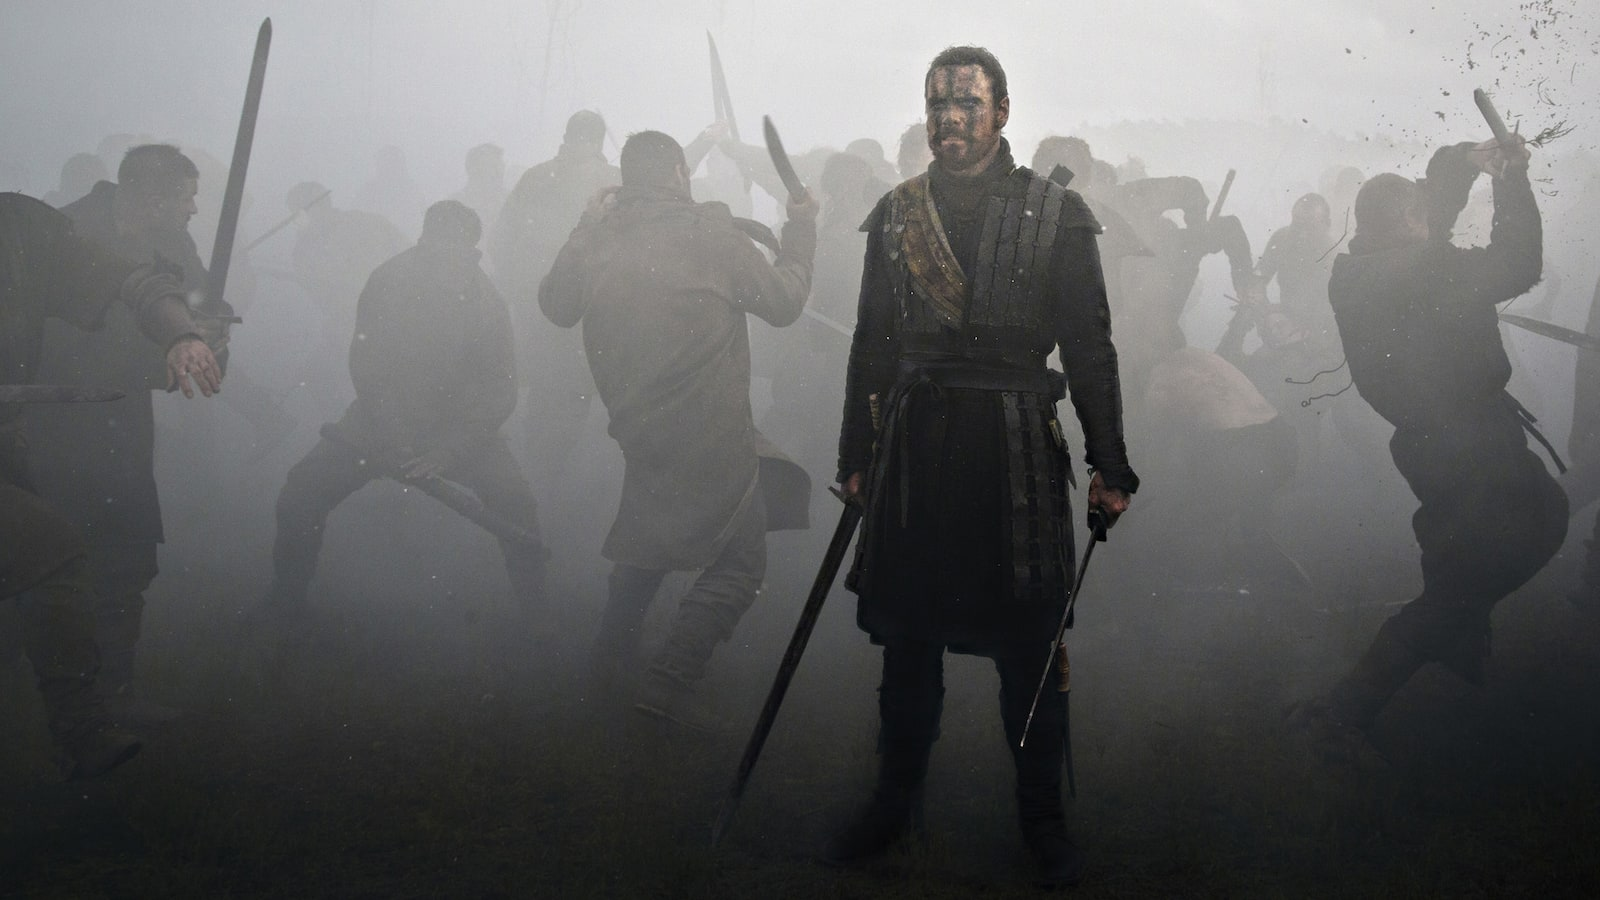 macbeth factfile Banquo's character is that of a noble and honourable man who obeyed orders and possessed unwavering loyalty to those he acknowledges banquo is a man of integrity although, he is susceptible to ambition like macbeth, he does not bring those corrupt thoughts to life banquo was a wary man he had.